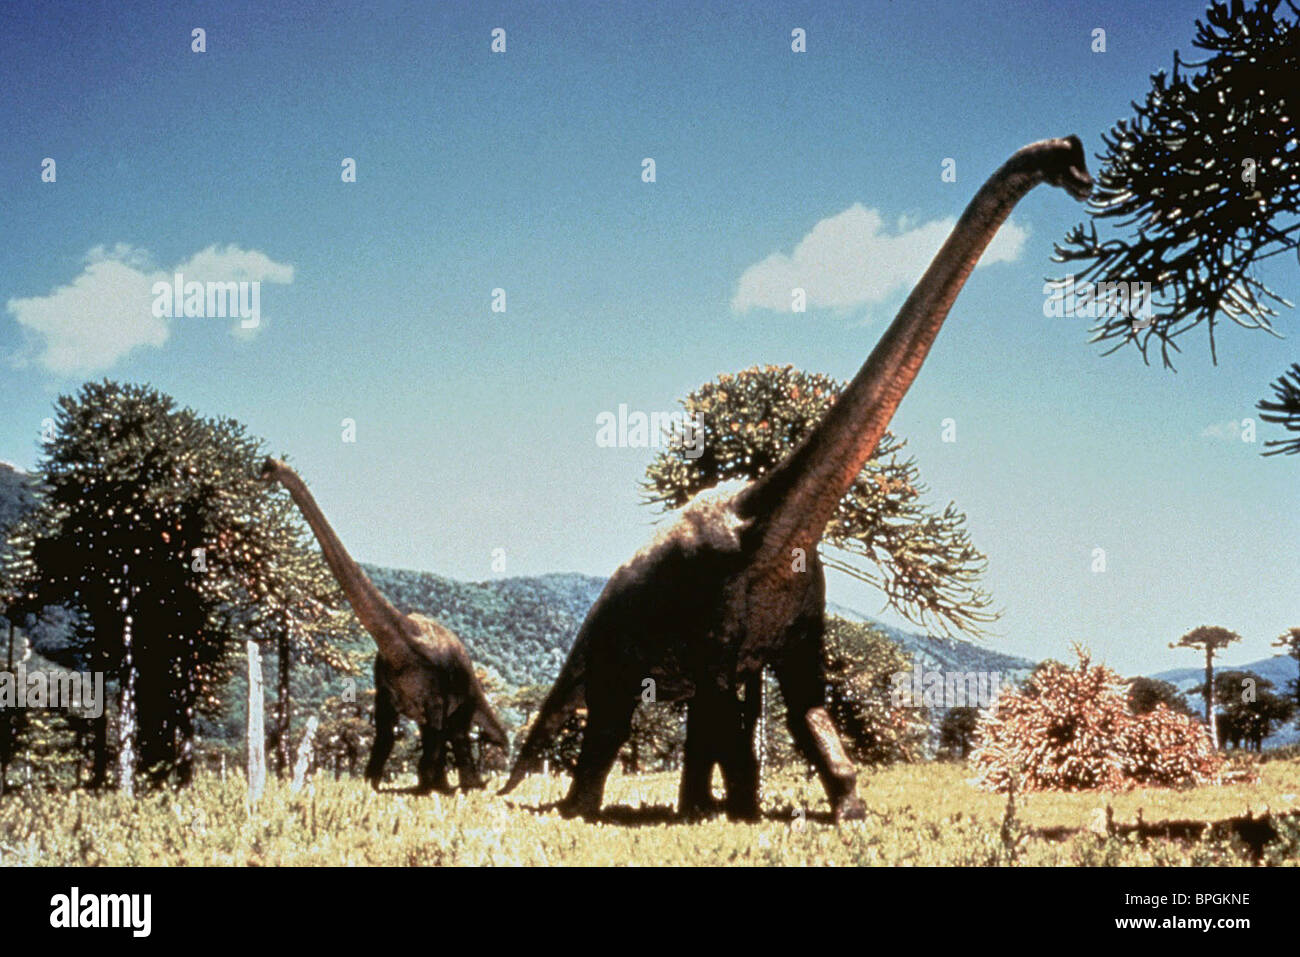 DIPLODOCUS WALKING WITH DINOSAURS (1999) - Stock Image